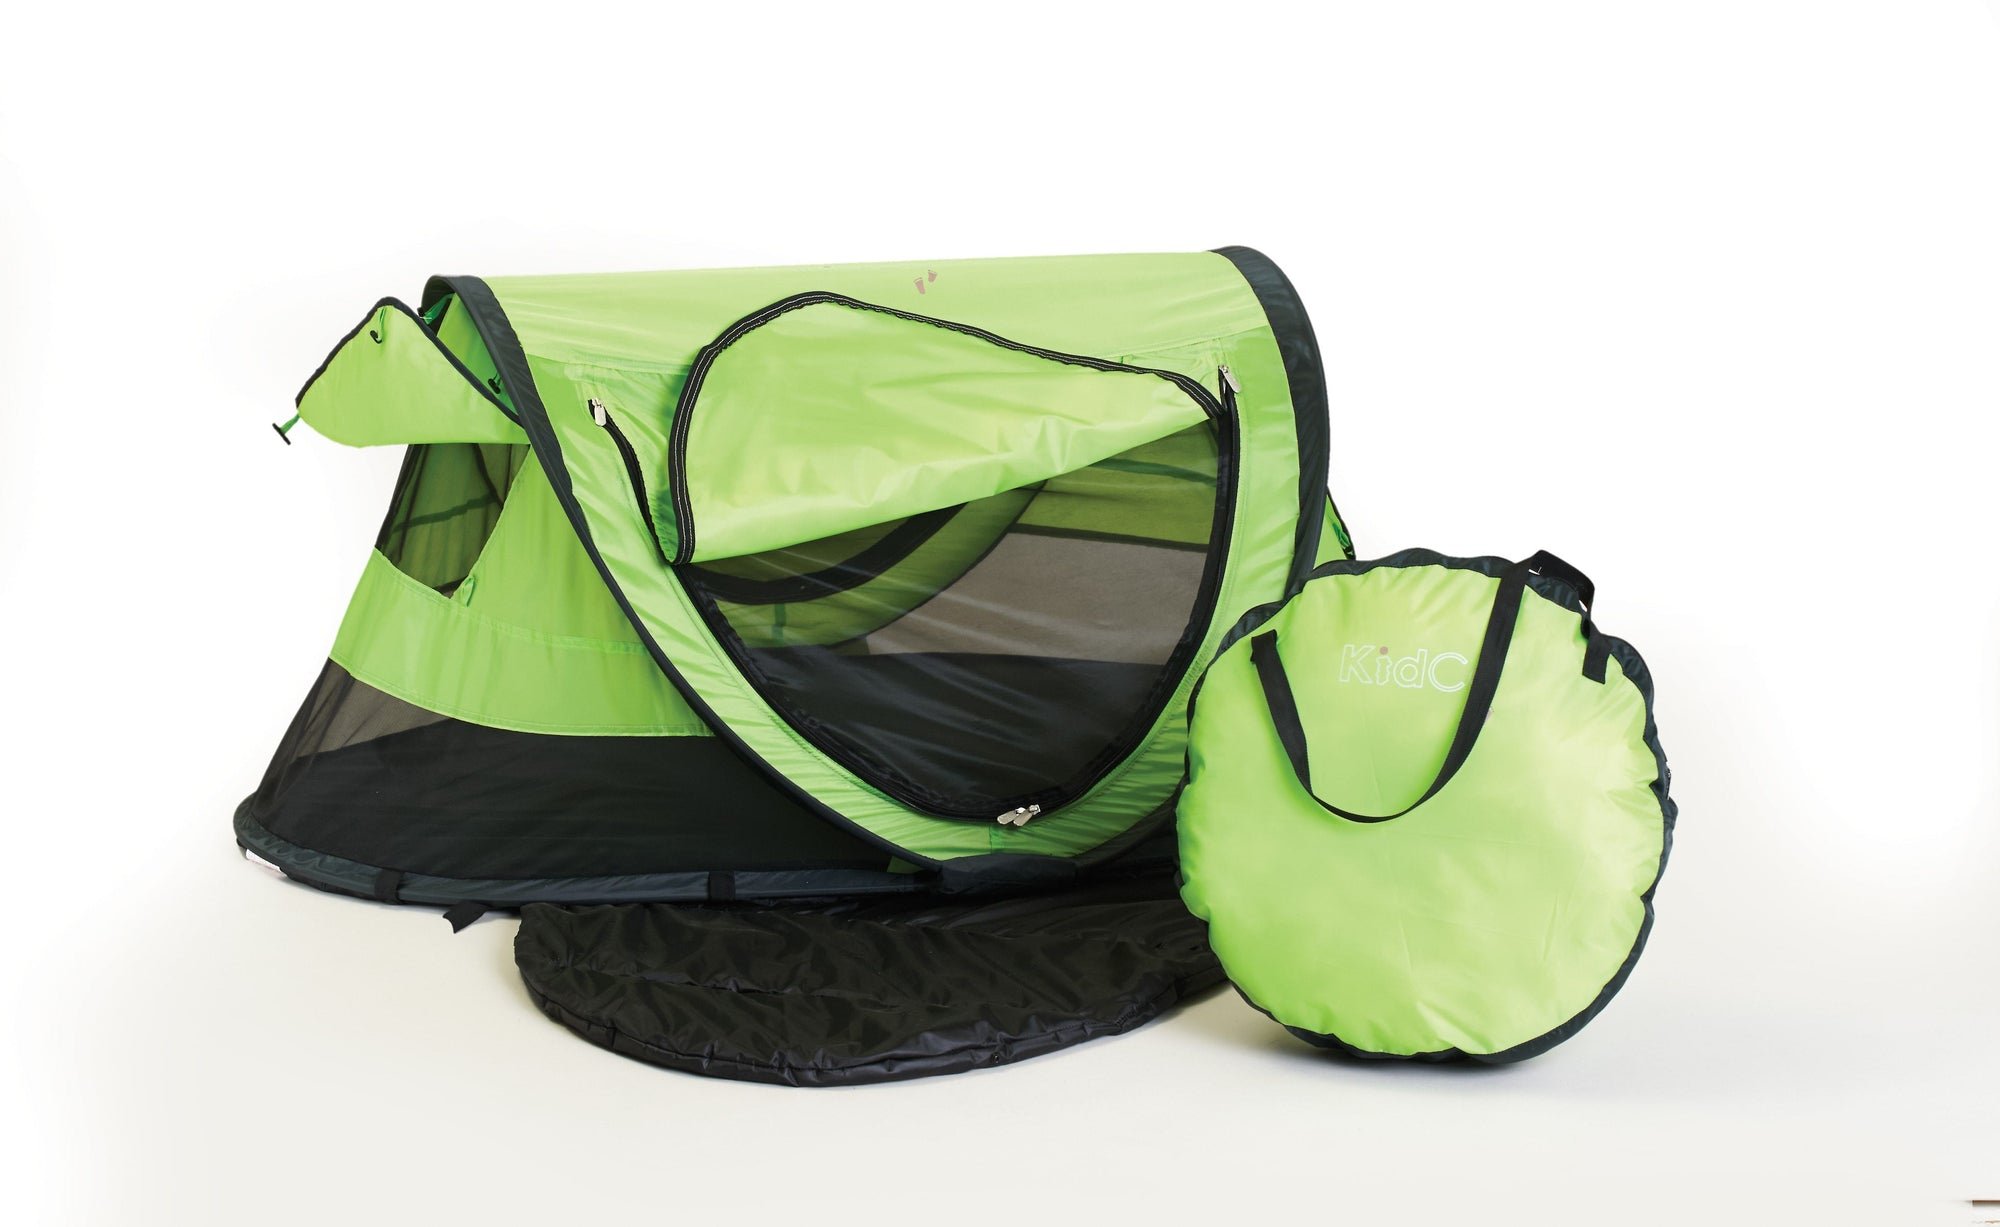 Carpa PeaPod Plus con Filtro UV - Kiwi